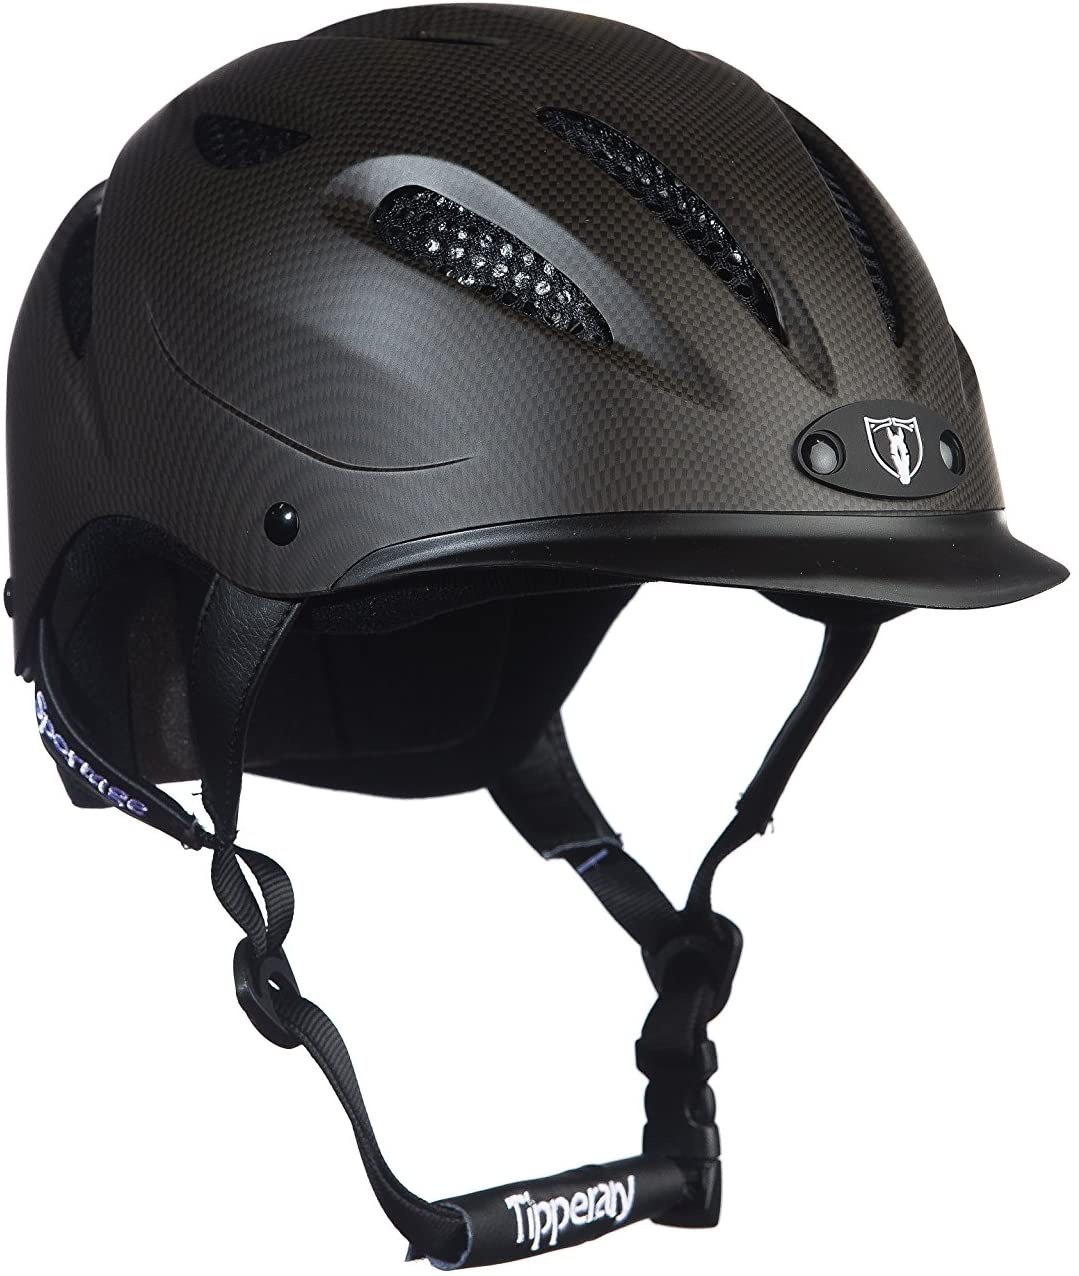 TIPPERARY EQUESTRIAN Horse Riding Helmet - Sportage - Lightweight Cooling Horseback Riding Apparel - Safety Helmet with Superior Ventilation and Air Flow - Cocoa Brown - S